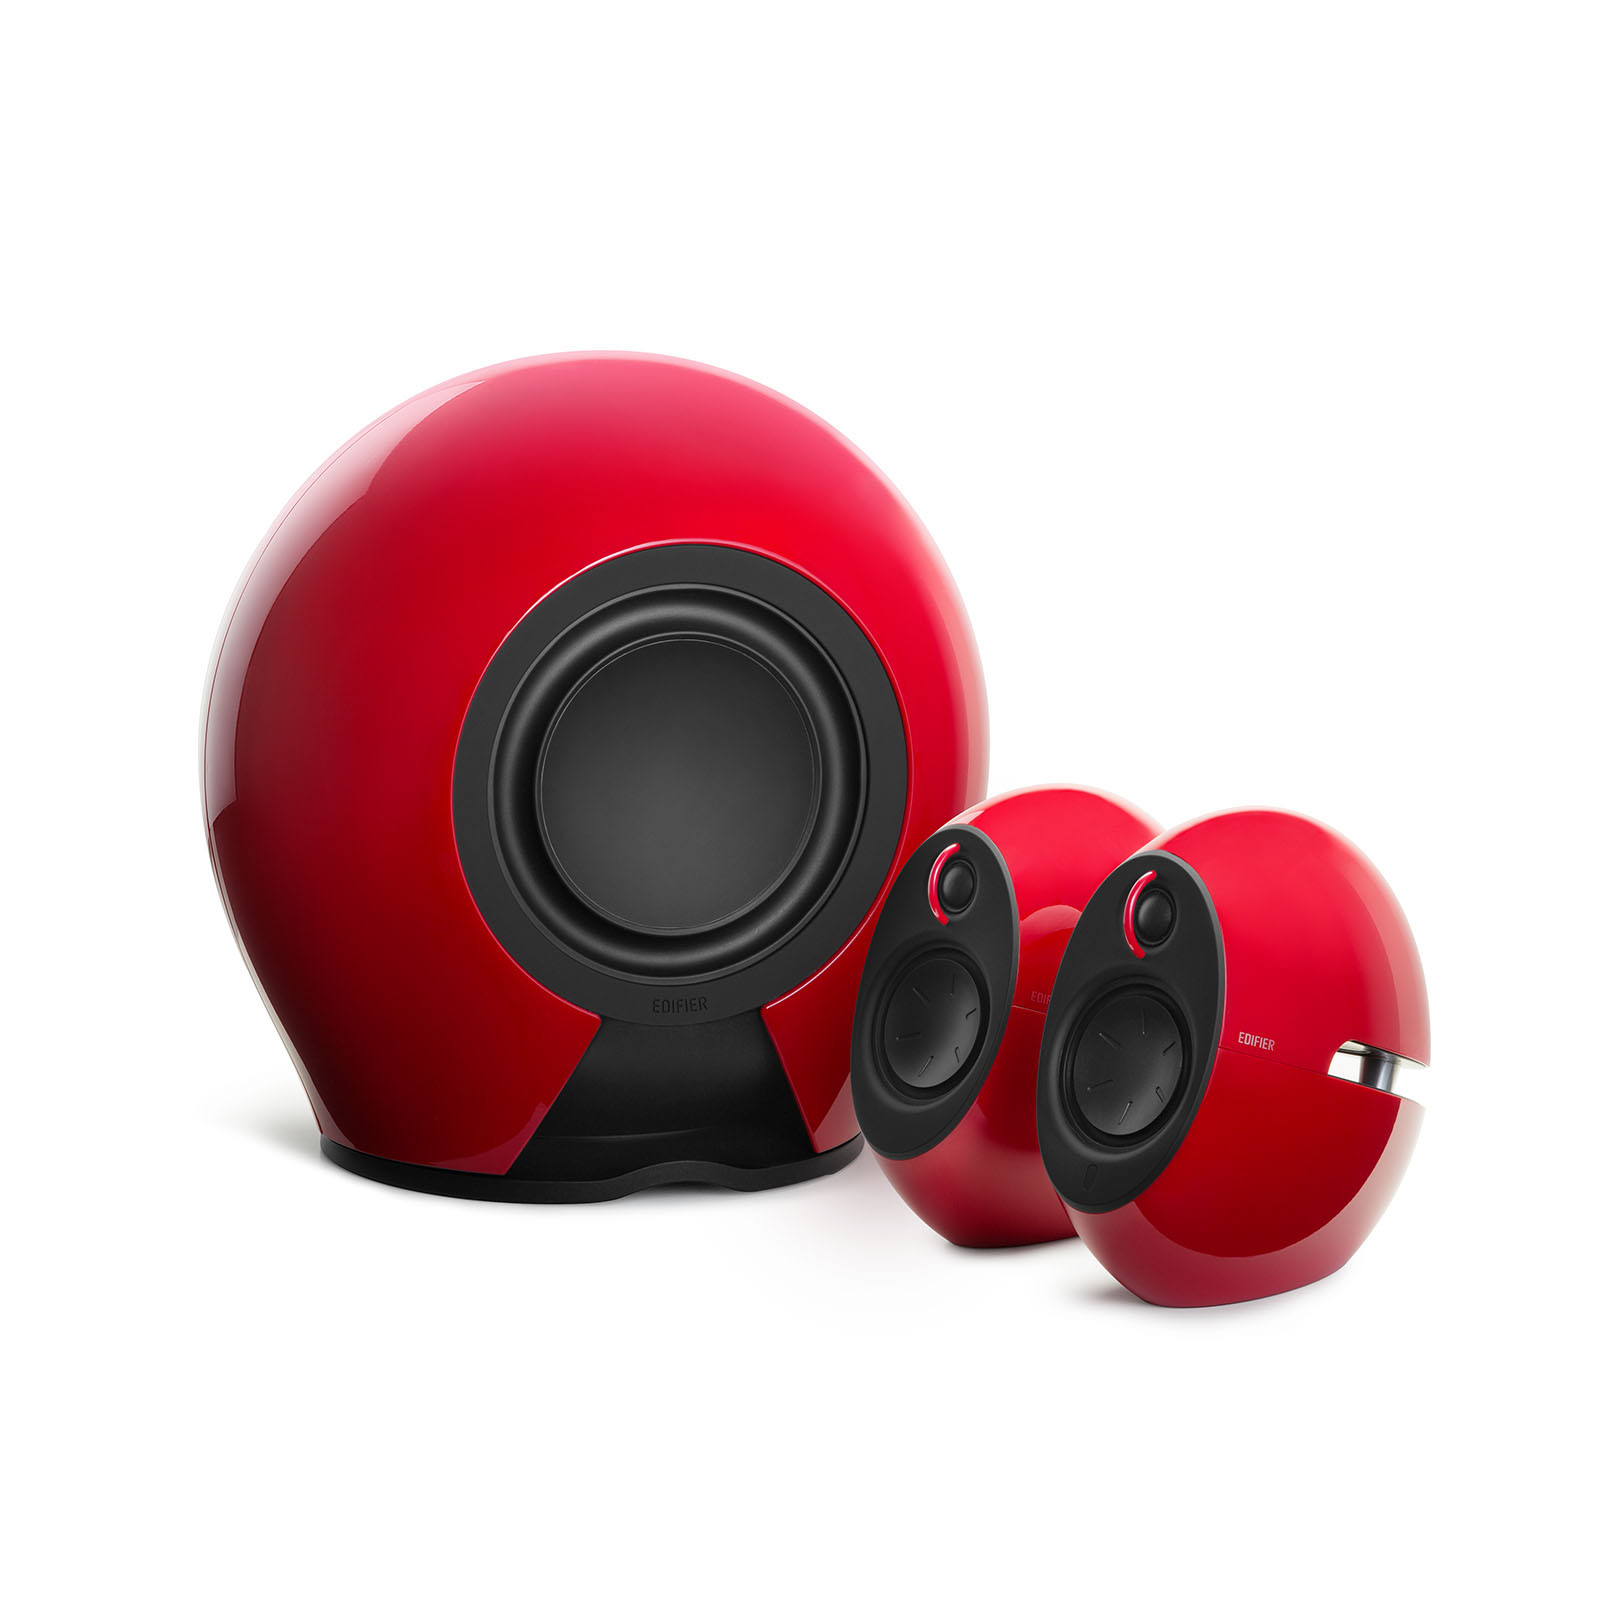 EDIFIER E235 RED 234 W, 2.1, BLUETOOTH 4.0, 3.5MM AUX,